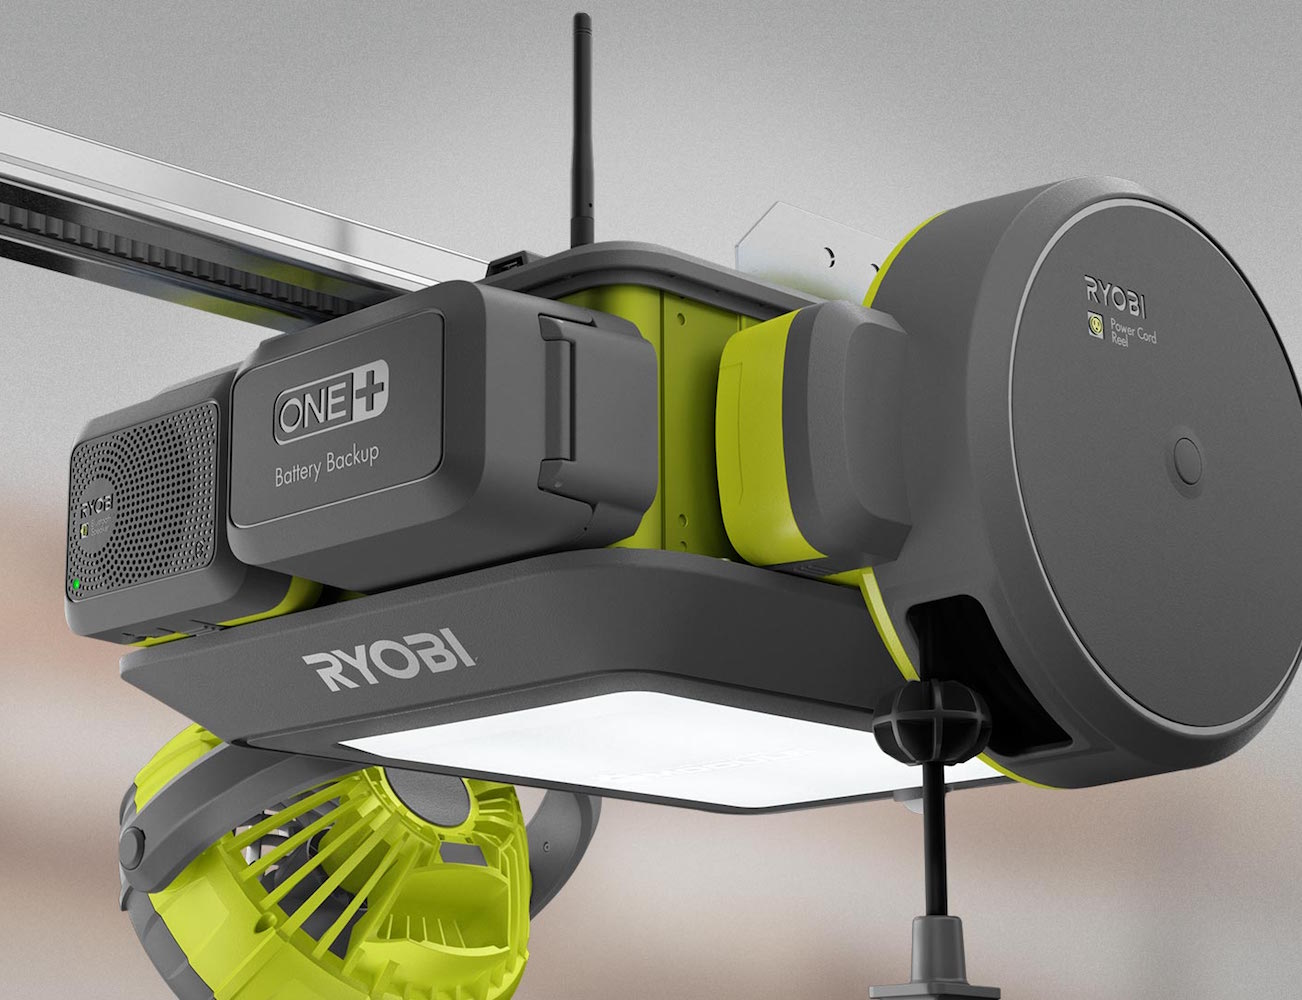 Ryobi Ultra Quiet Garage Door Opener Gadget Flow